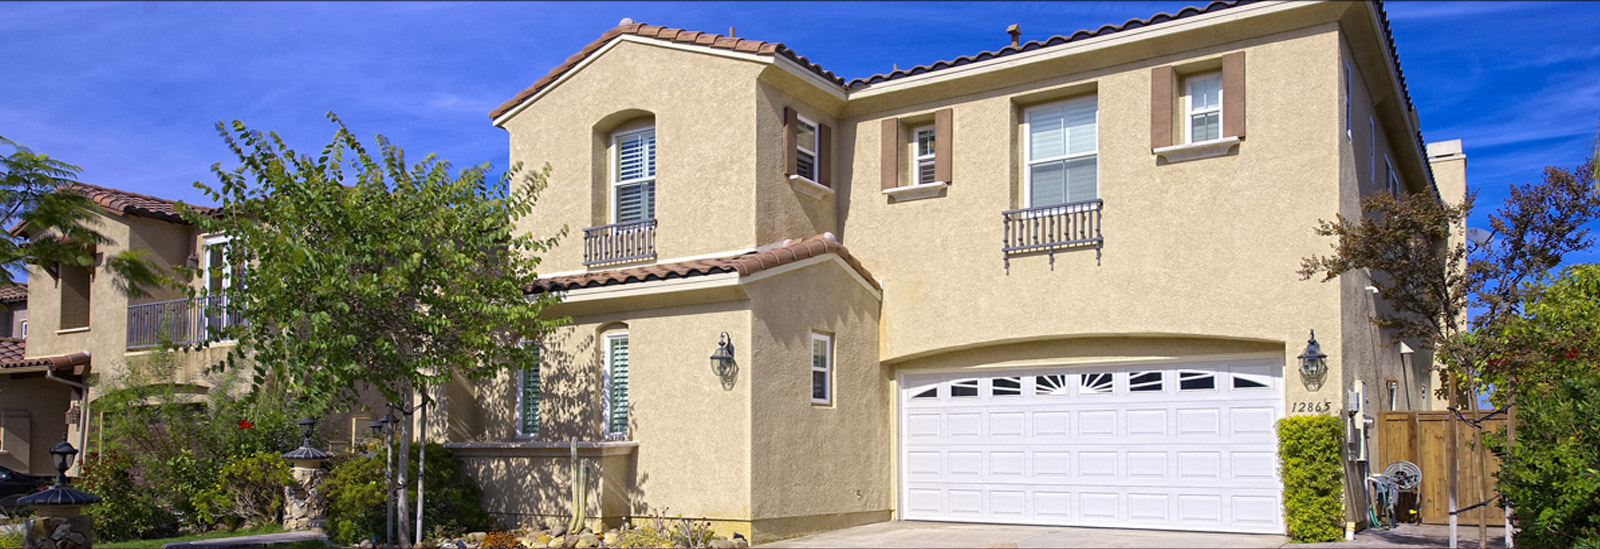 12865 Starwood Ln. | Scripps Ranch | Coming Soon!